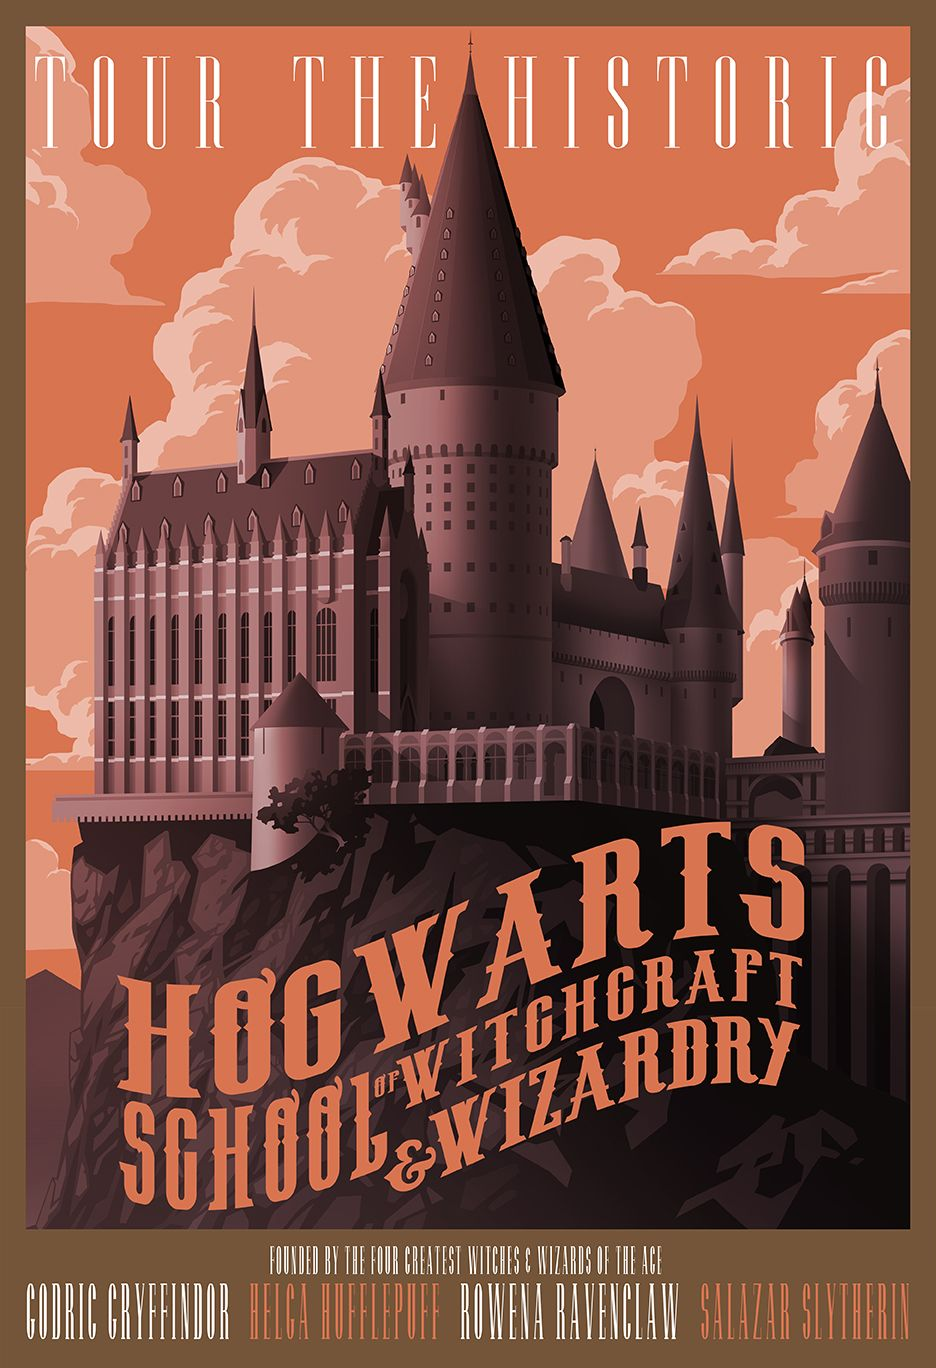 Tour hogwarts castle by christopher ables search results for harry potter